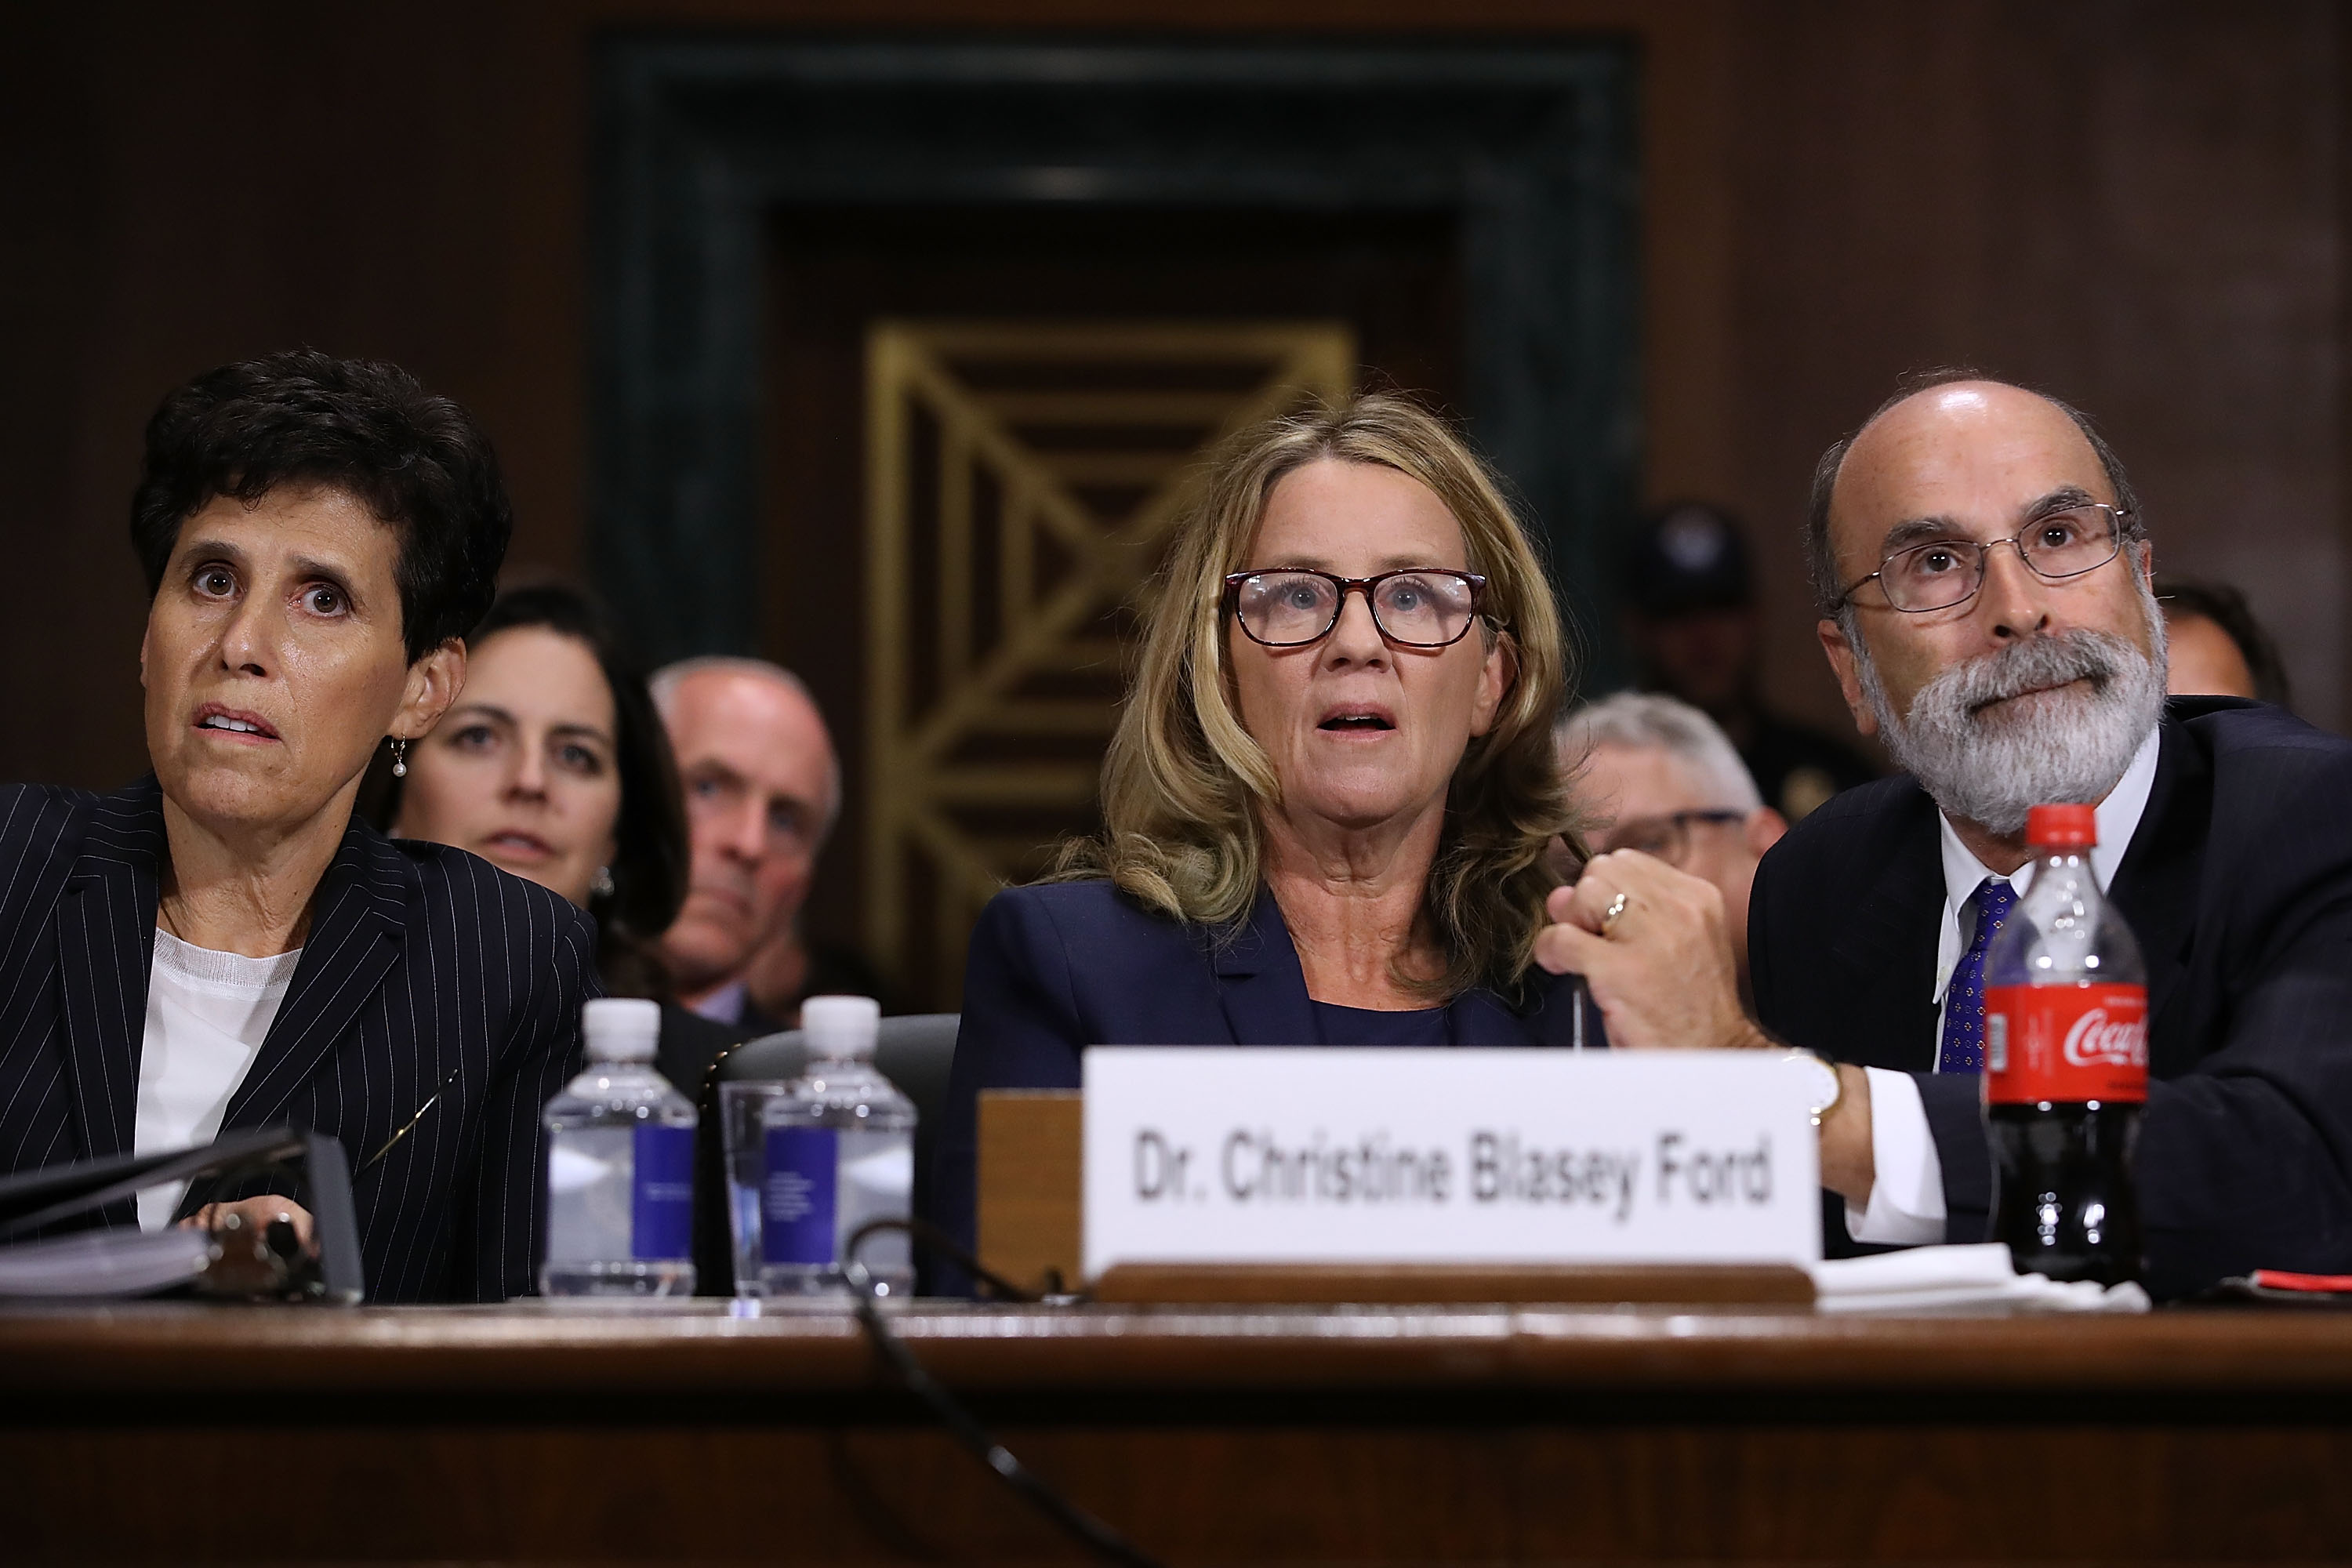 Christine Blasey Ford may have lied